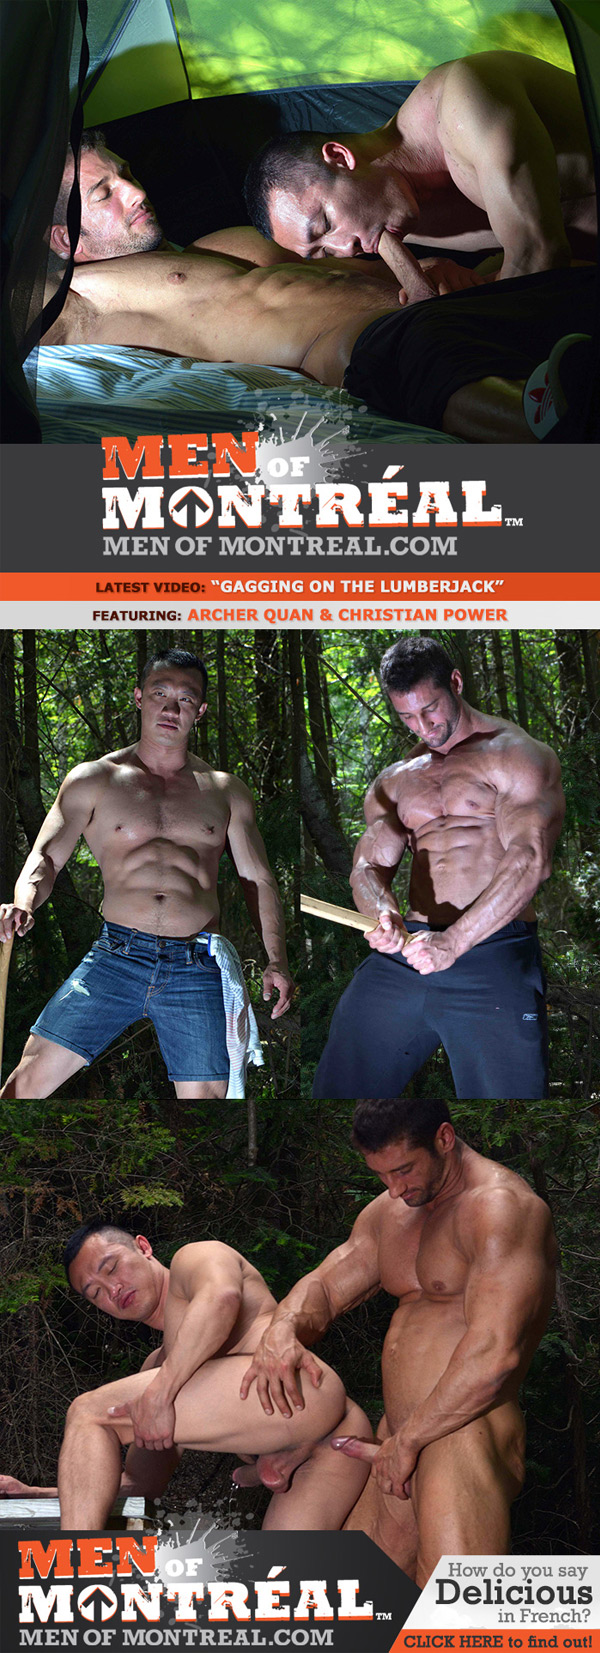 Gagging on The Lumberjack (Archer Quan & Christian Power) at MenOfMontreal